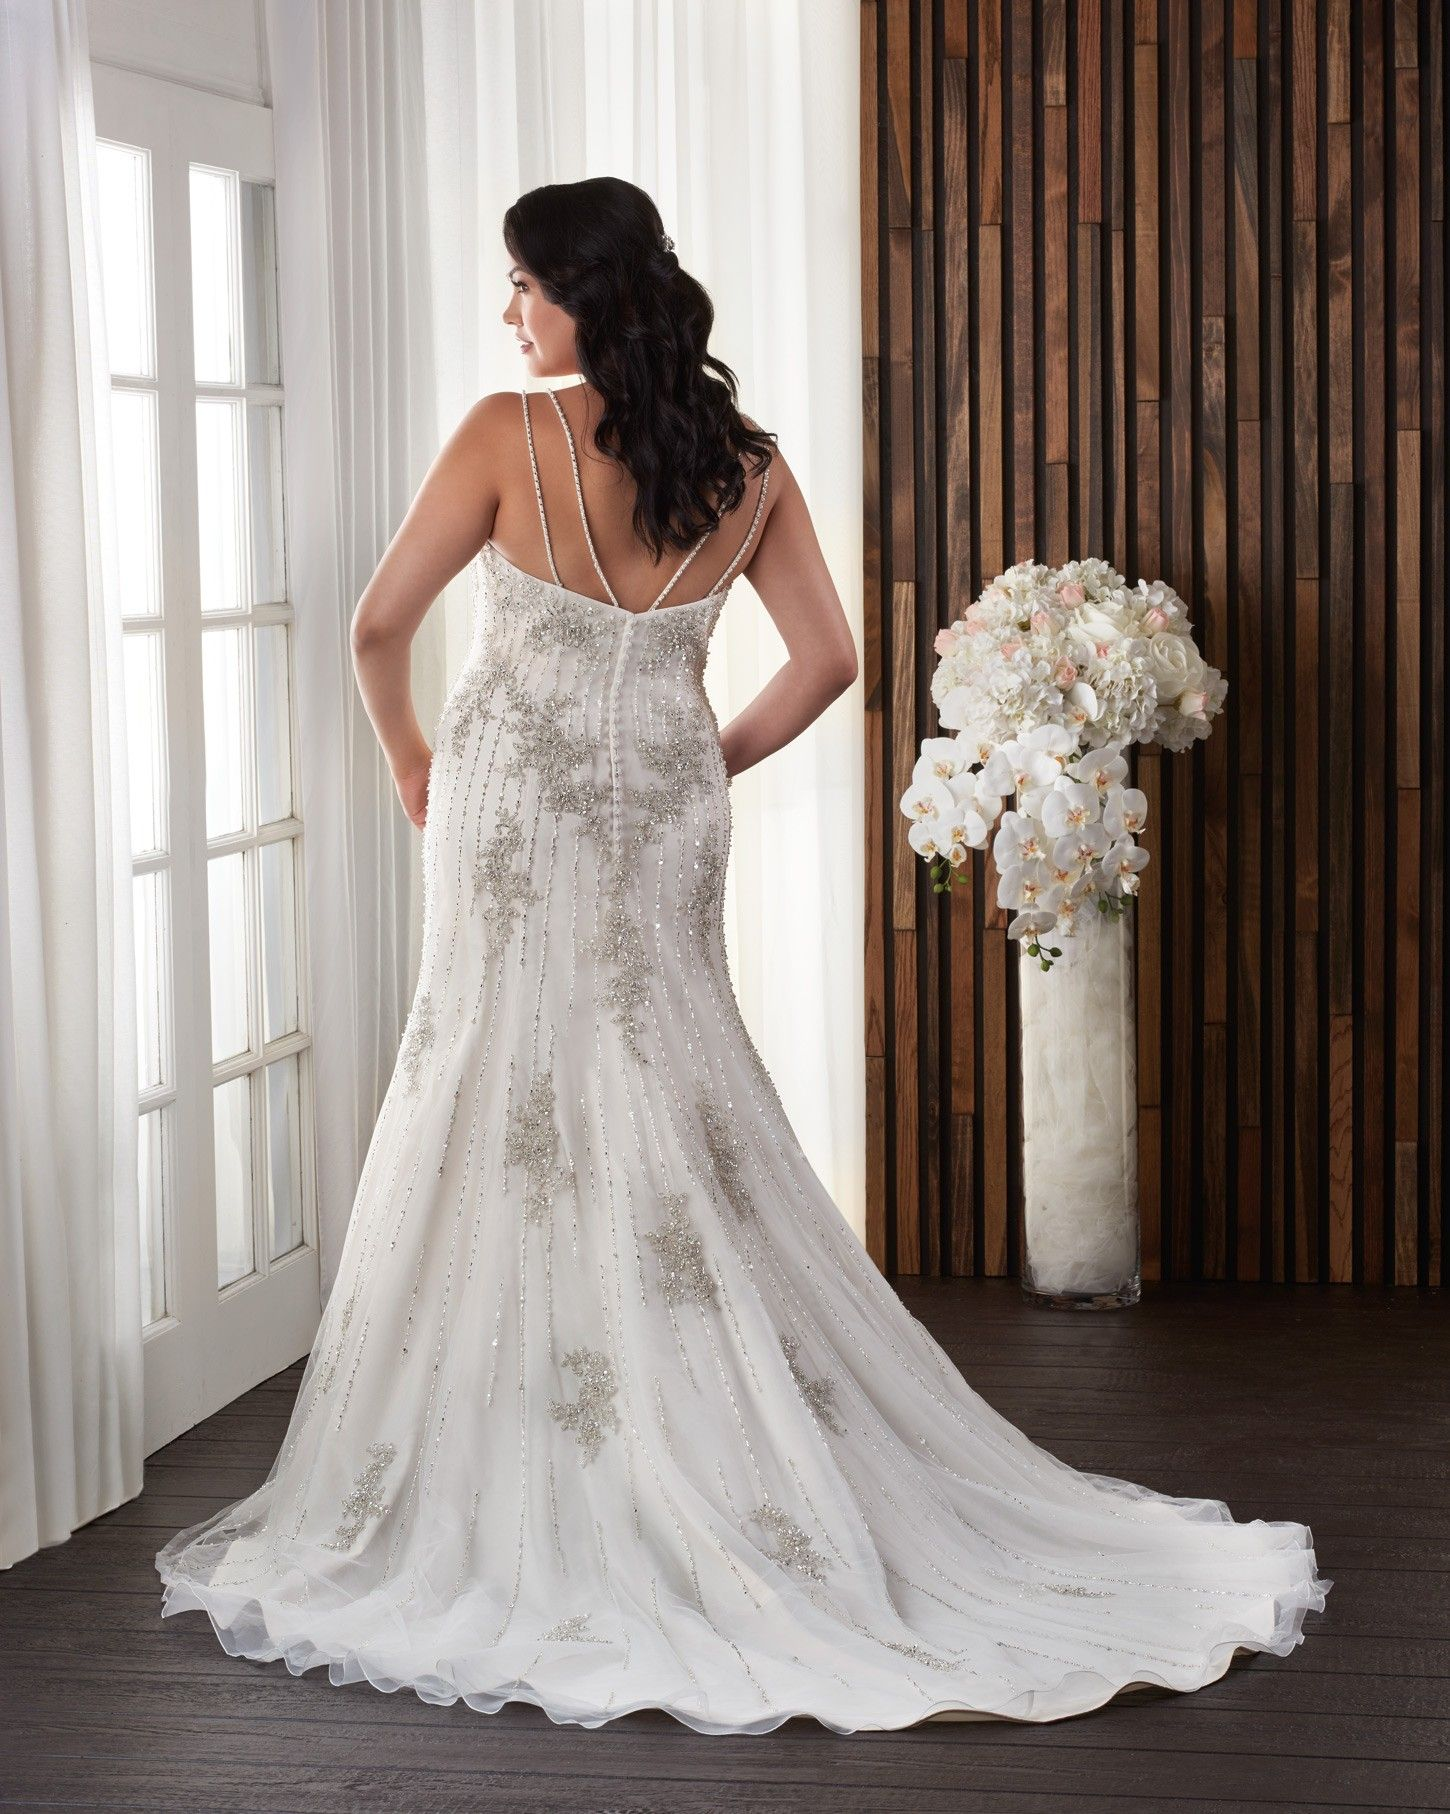 Winter wedding dresses plus size  Pin by Laura Evans on winter wedding  Pinterest  Winter weddings